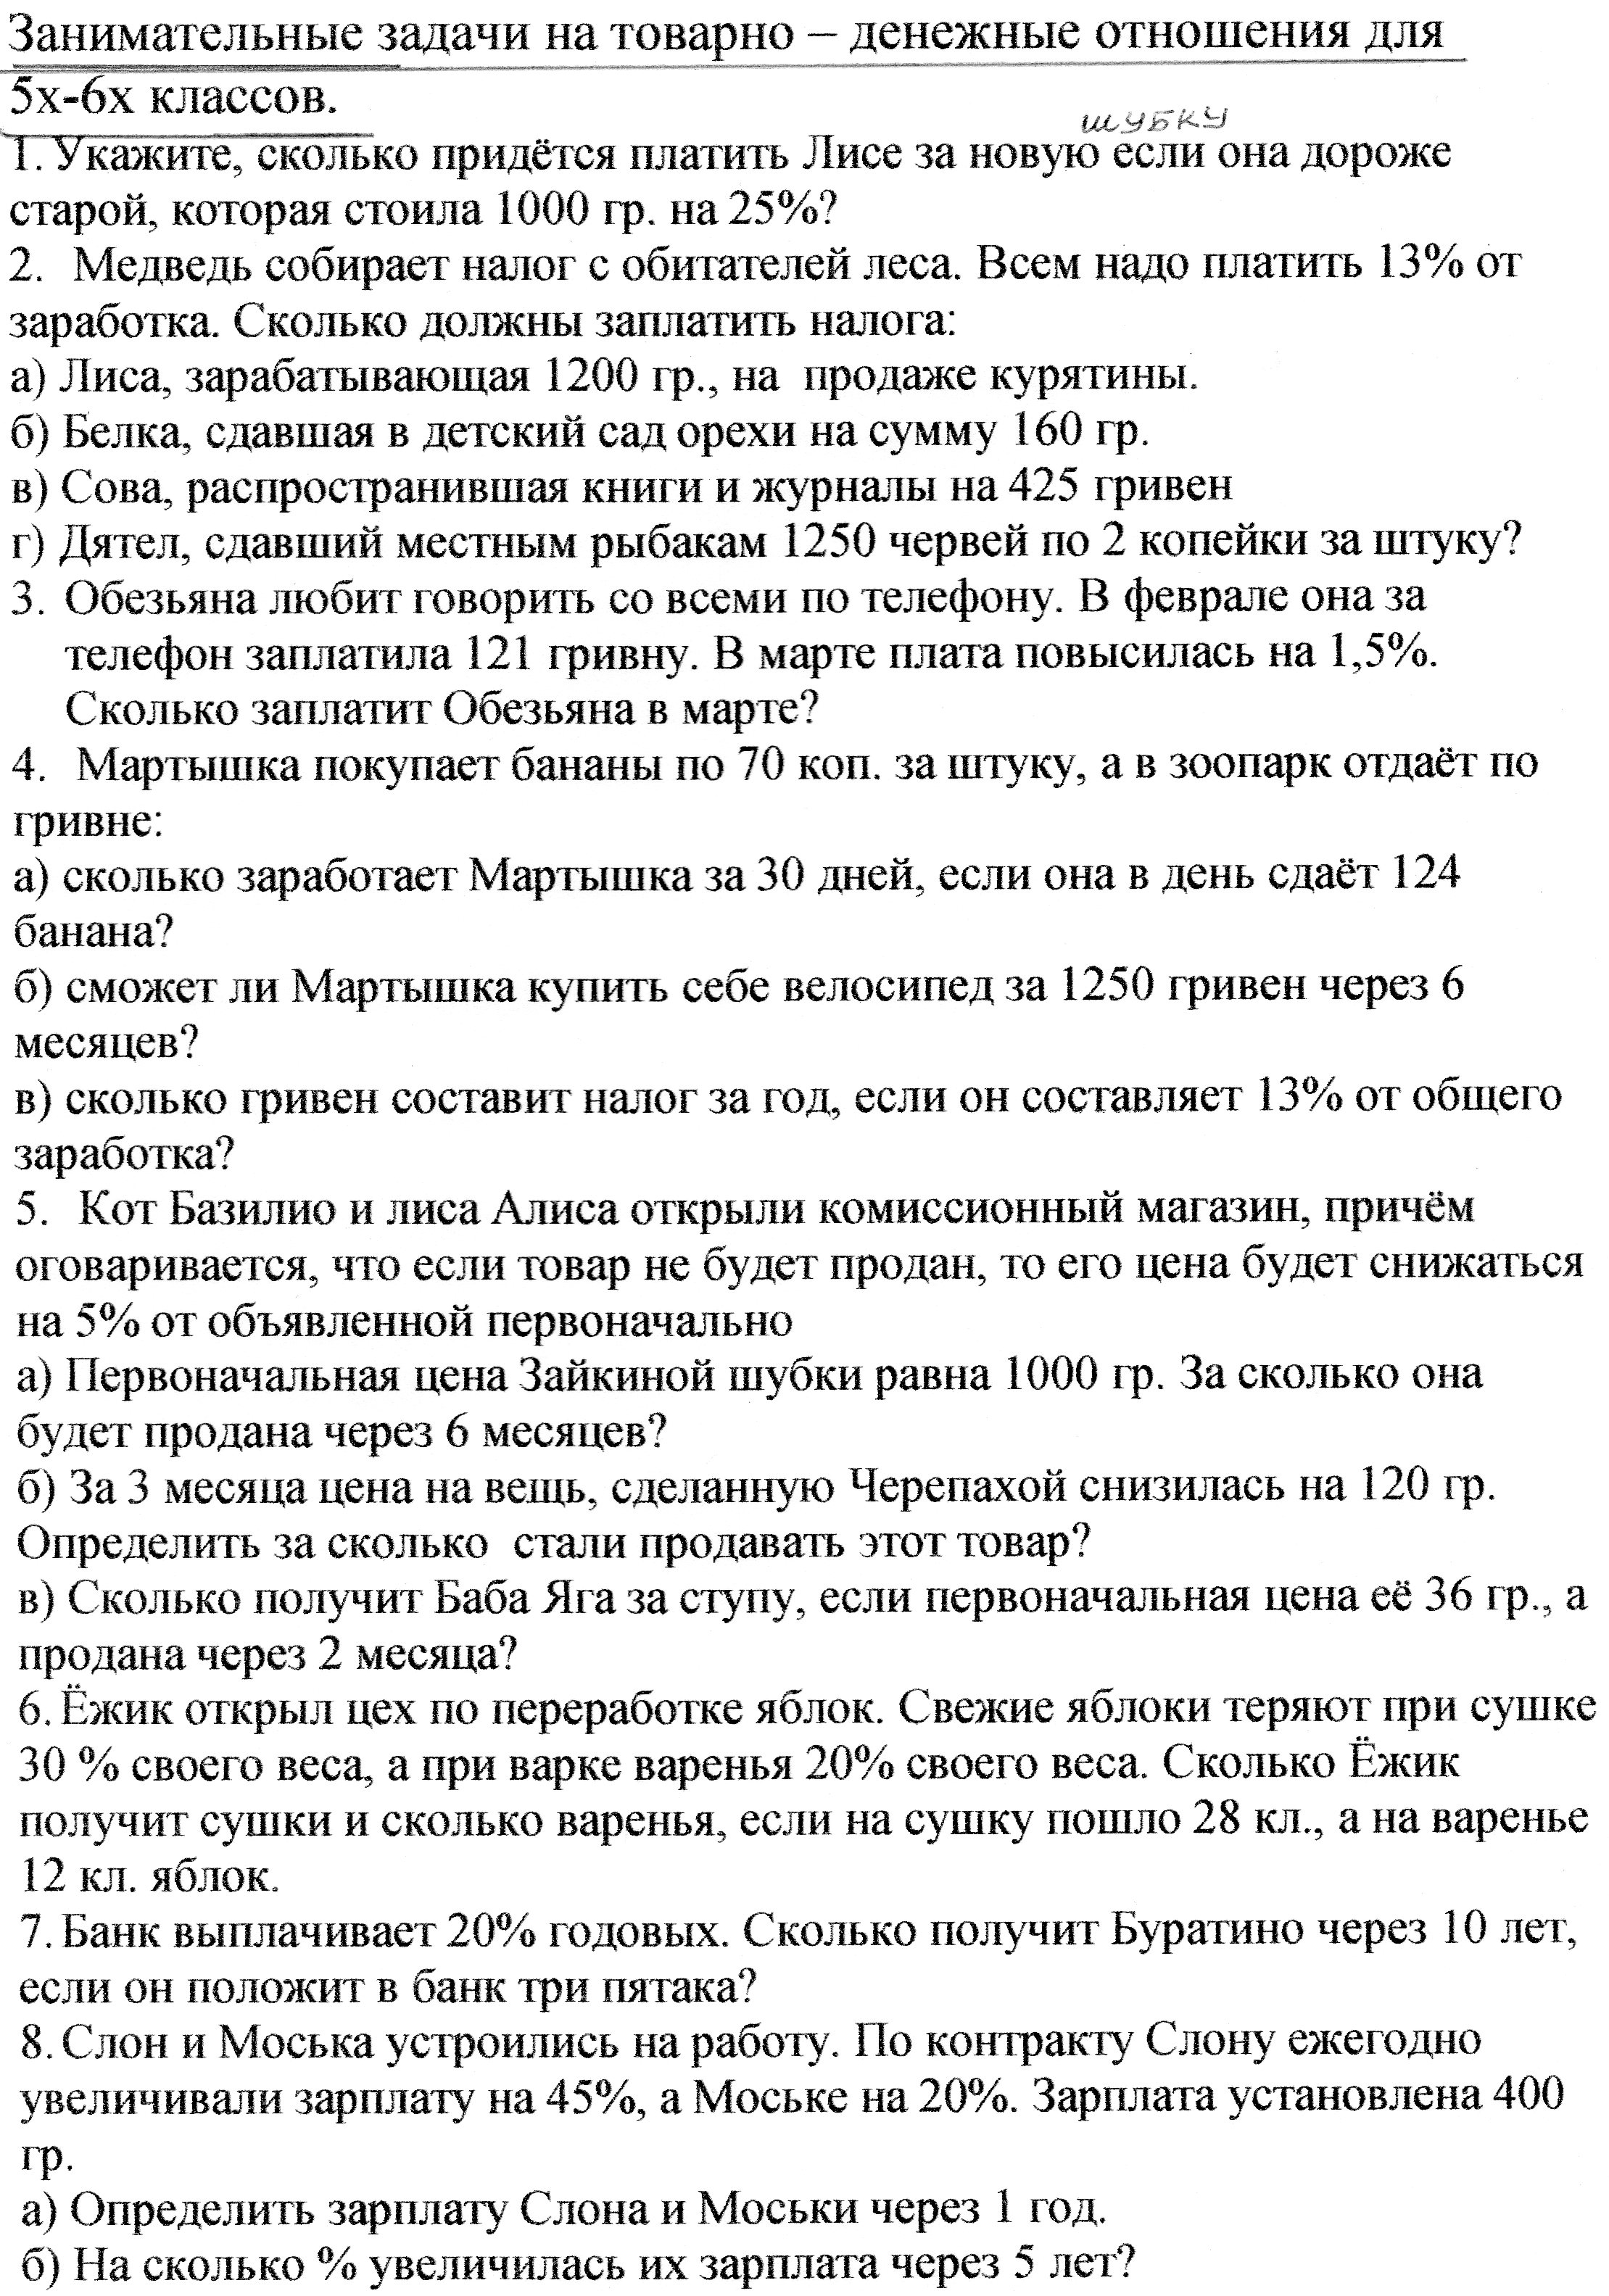 C:\Users\Валентина\Pictures\img154.jpg